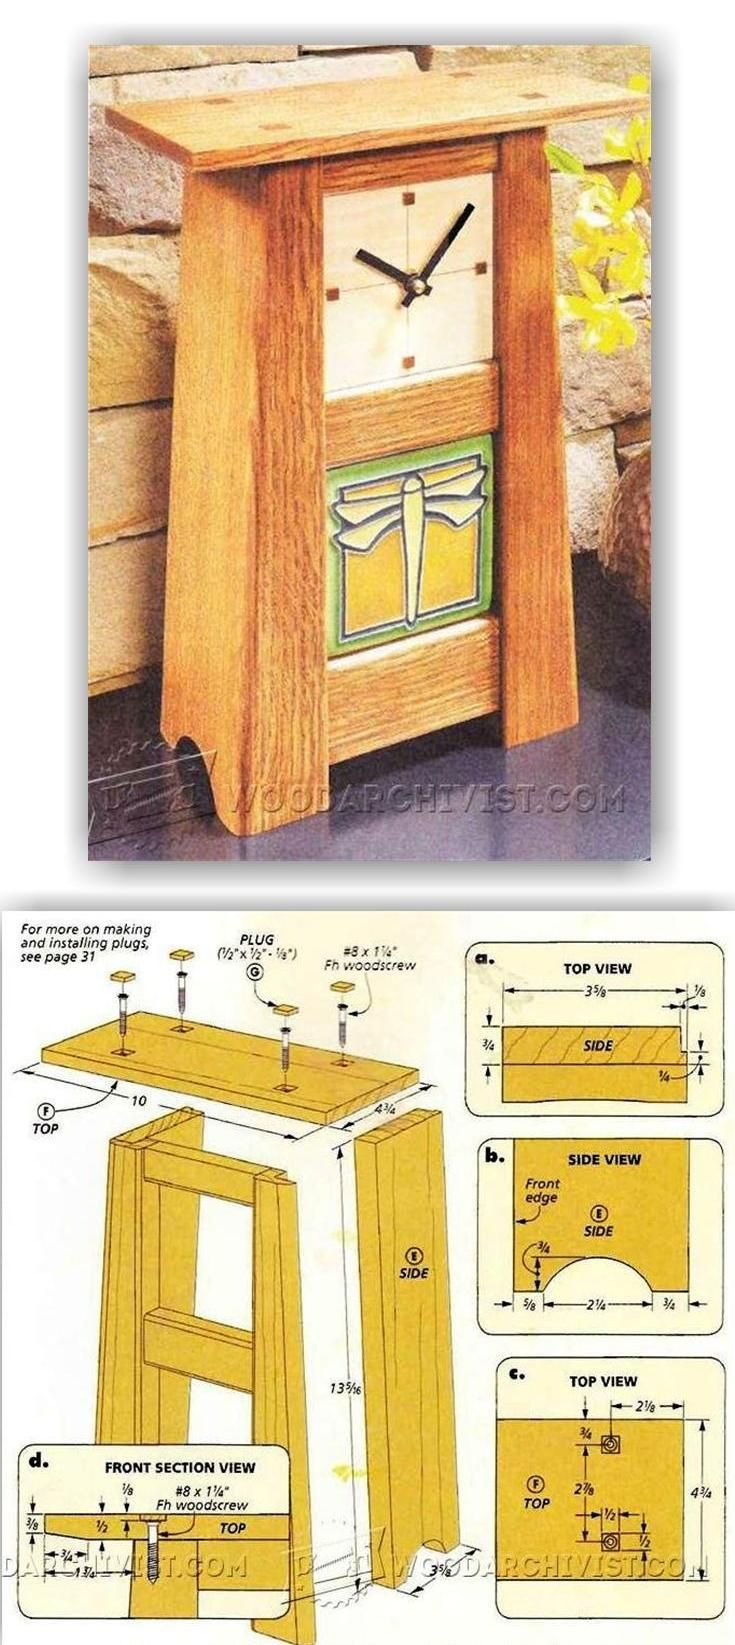 Craftsman Clock - Woodworking Plans and Projects   WoodArchivist.com